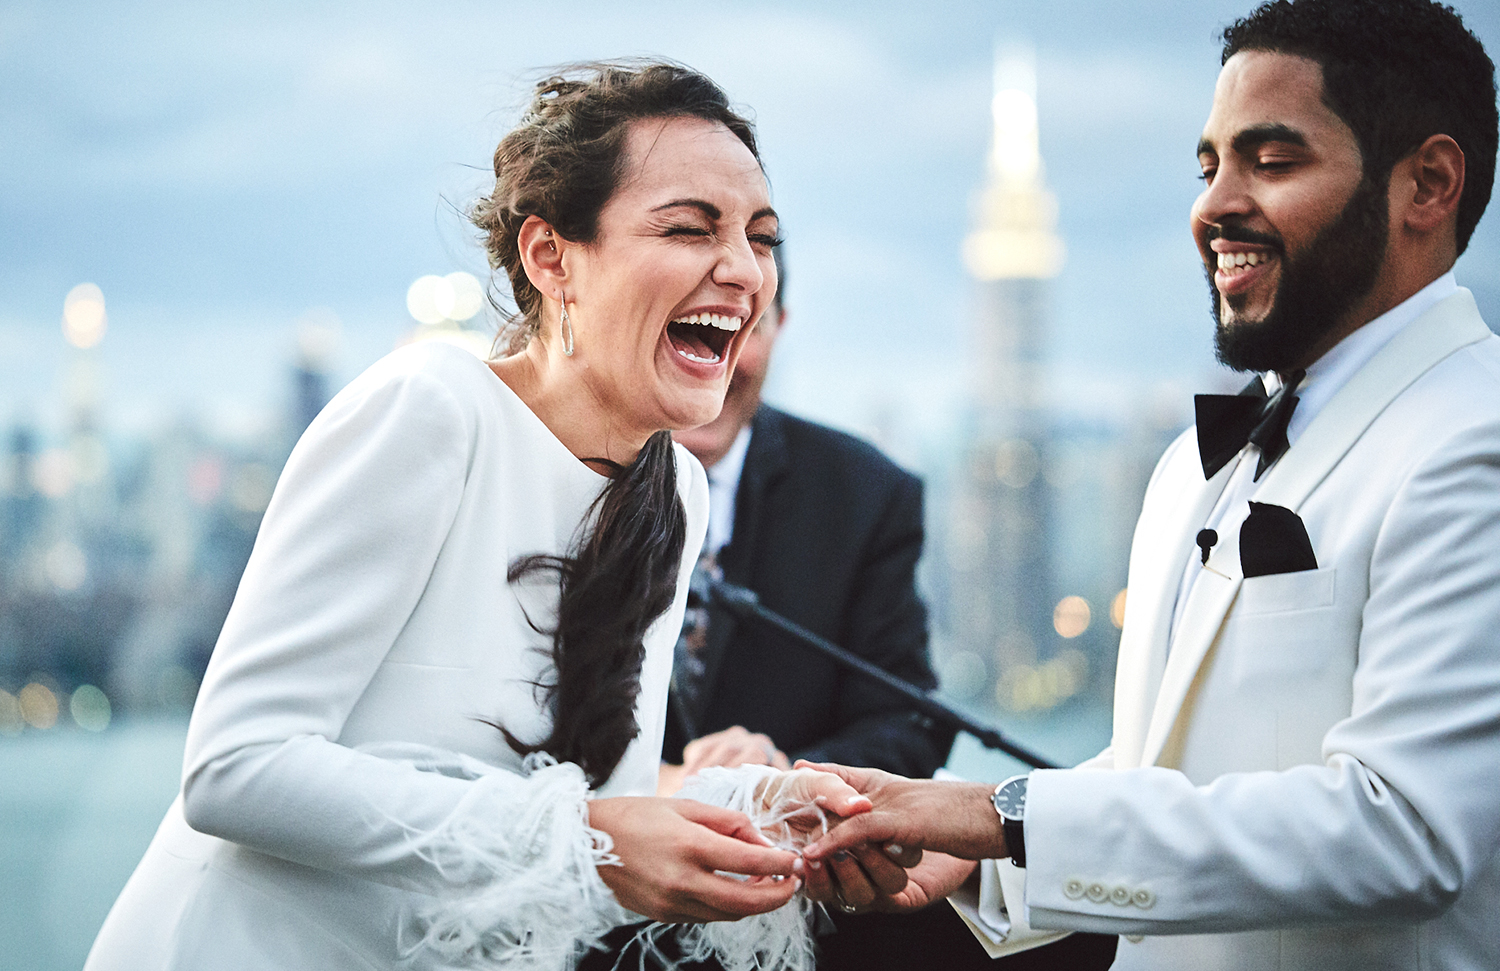 170930_WilliamValeWeddingPhotography_BrooklynWeddingPhotographer_By_BriJohnsonWeddings_0127.jpg